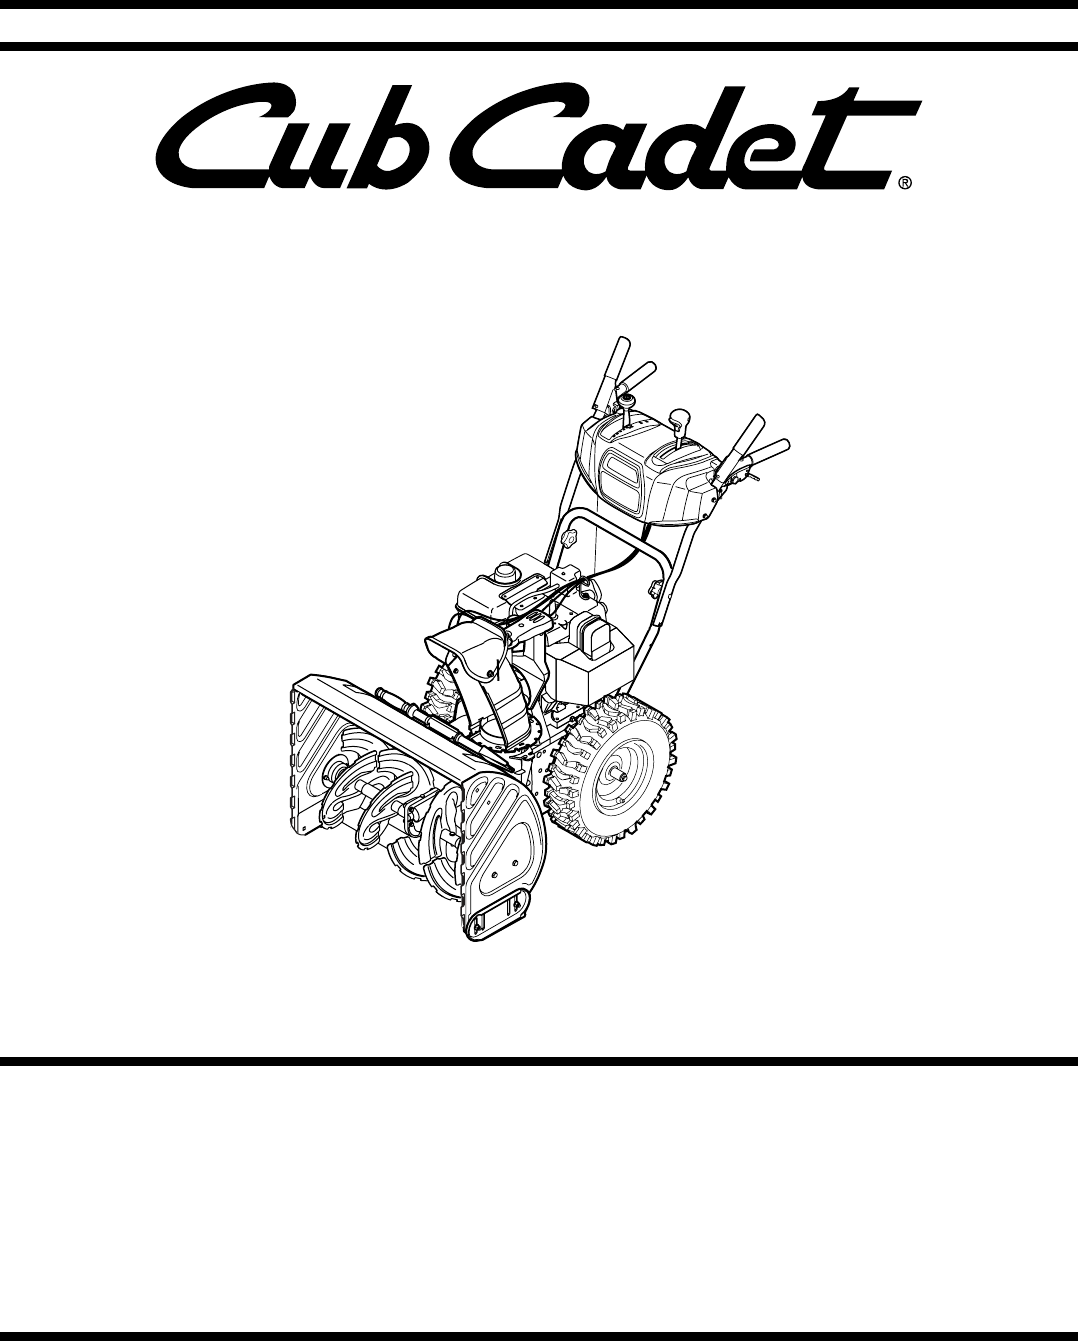 cub cadet snow blower swe 528 user guide manualsonline com cub cadet snow blower manual 109-032 cub cadet snow blower manual and parts list